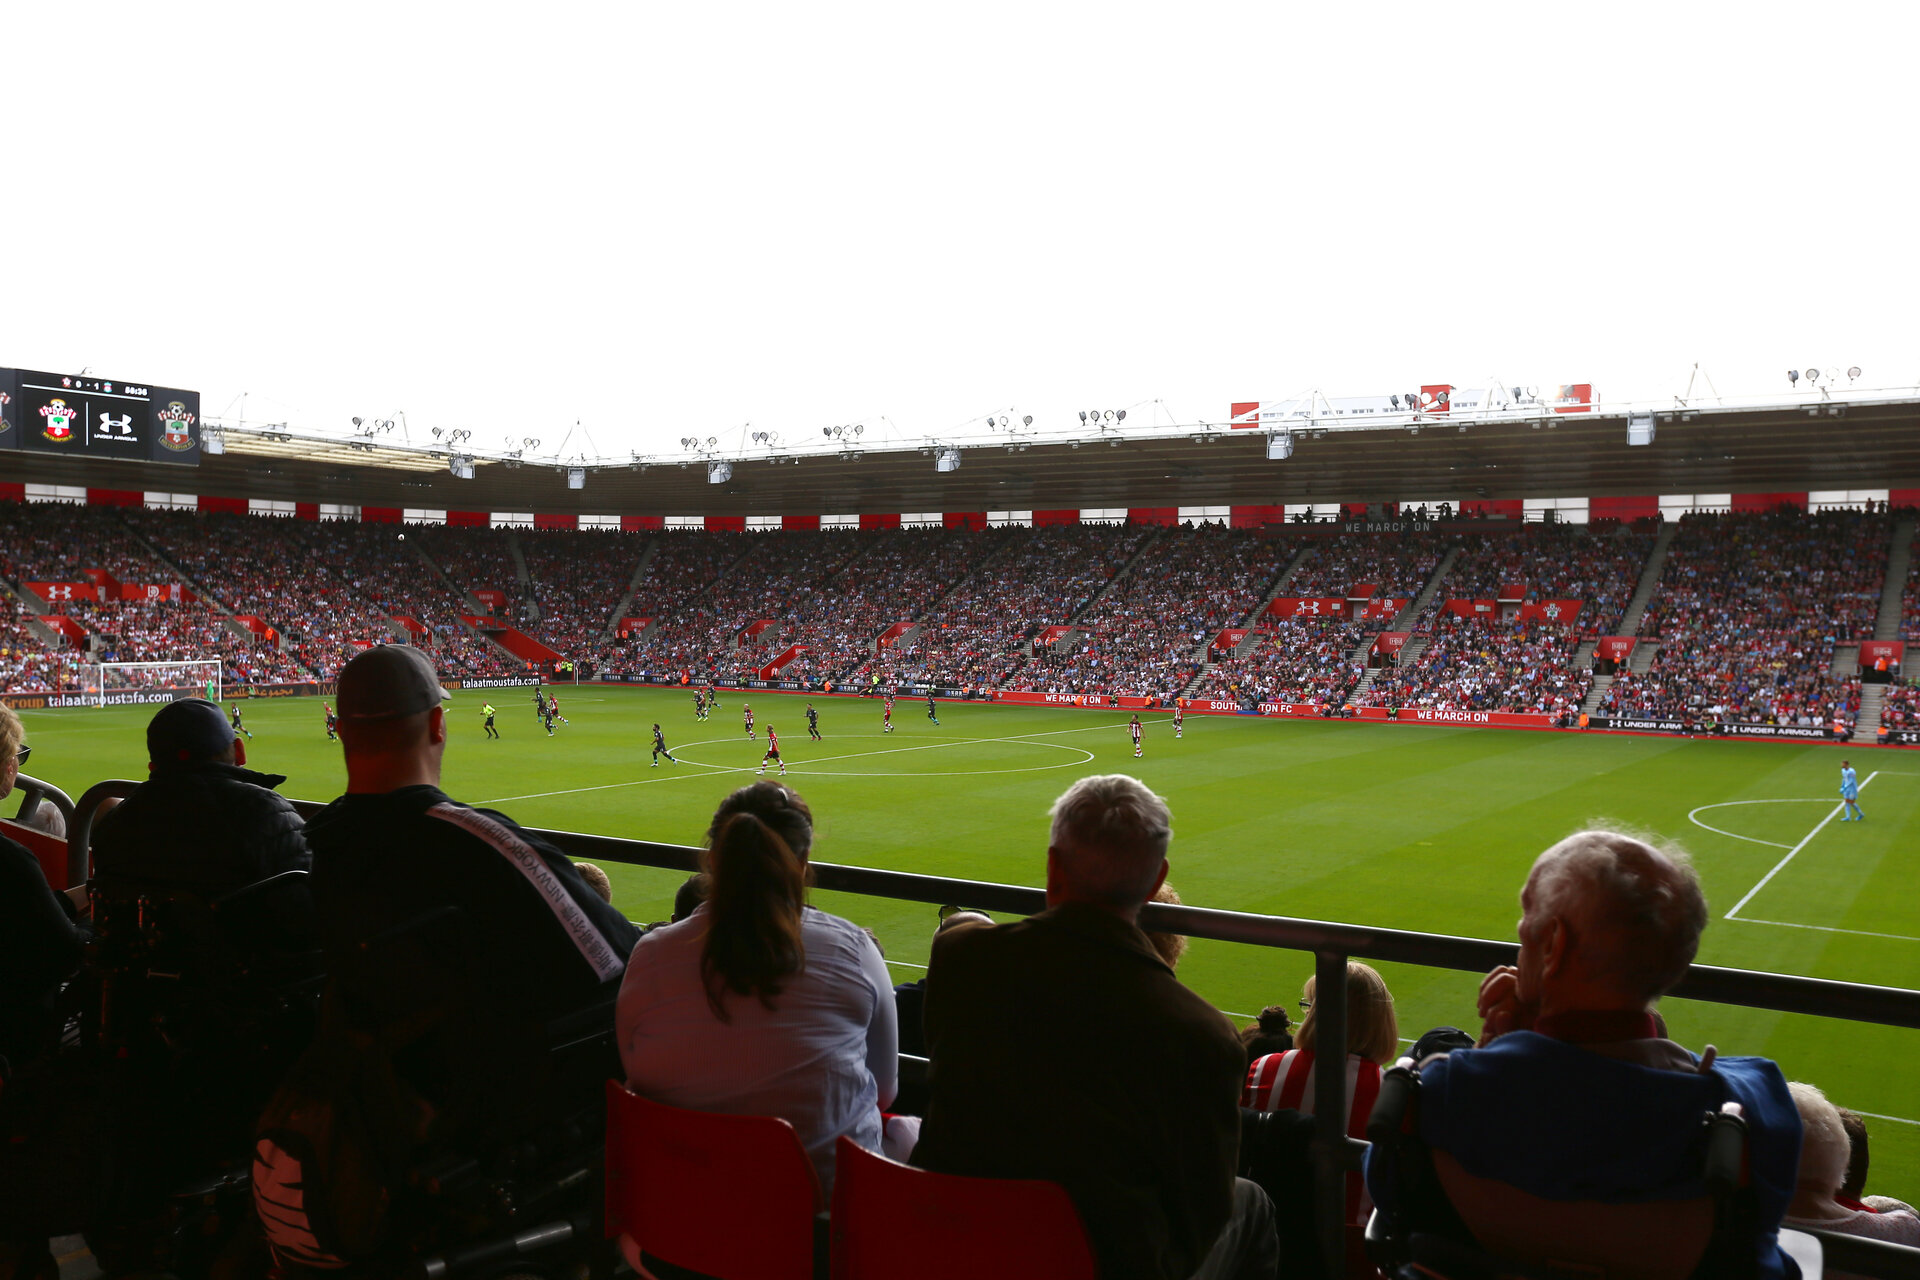 SOUTHAMPTON, ENGLAND - AUGUST 17: Disabled view point from the Itchen stand during the Premier League match between Southampton FC and Liverpool FC at St Mary's Stadium on August 17, 2019 in Southampton, United Kingdom. (Photo by James Bridle - Southampton FC/Southampton FC via Getty Images)